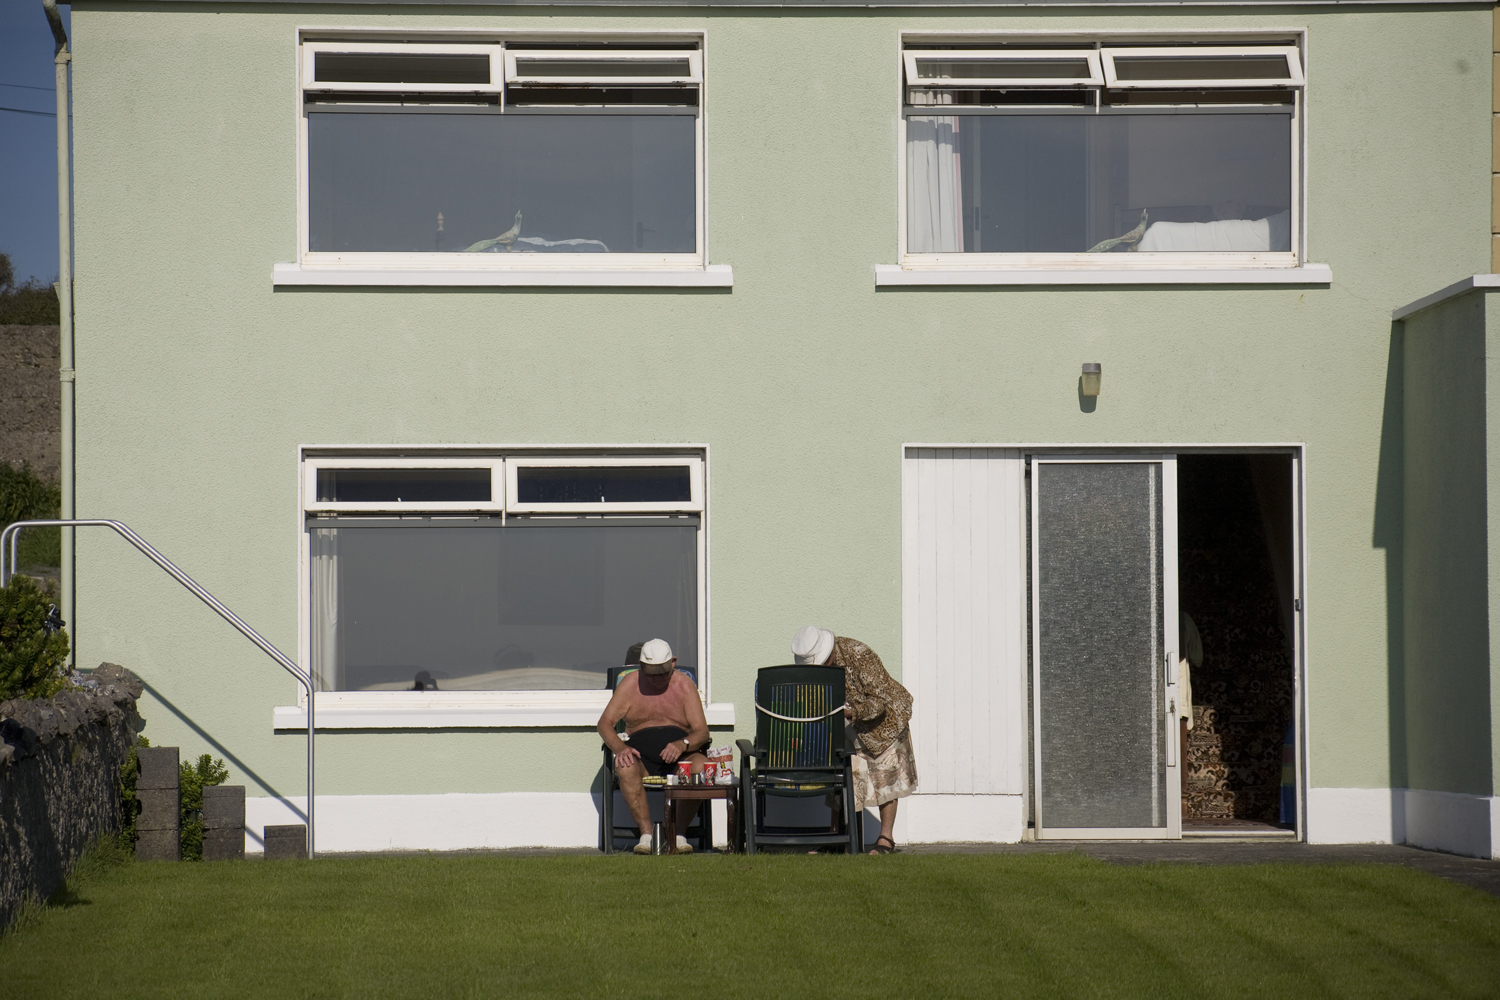 A documentary photograph of an elderly couple sitting outside their home during a rare sunny day in ireland